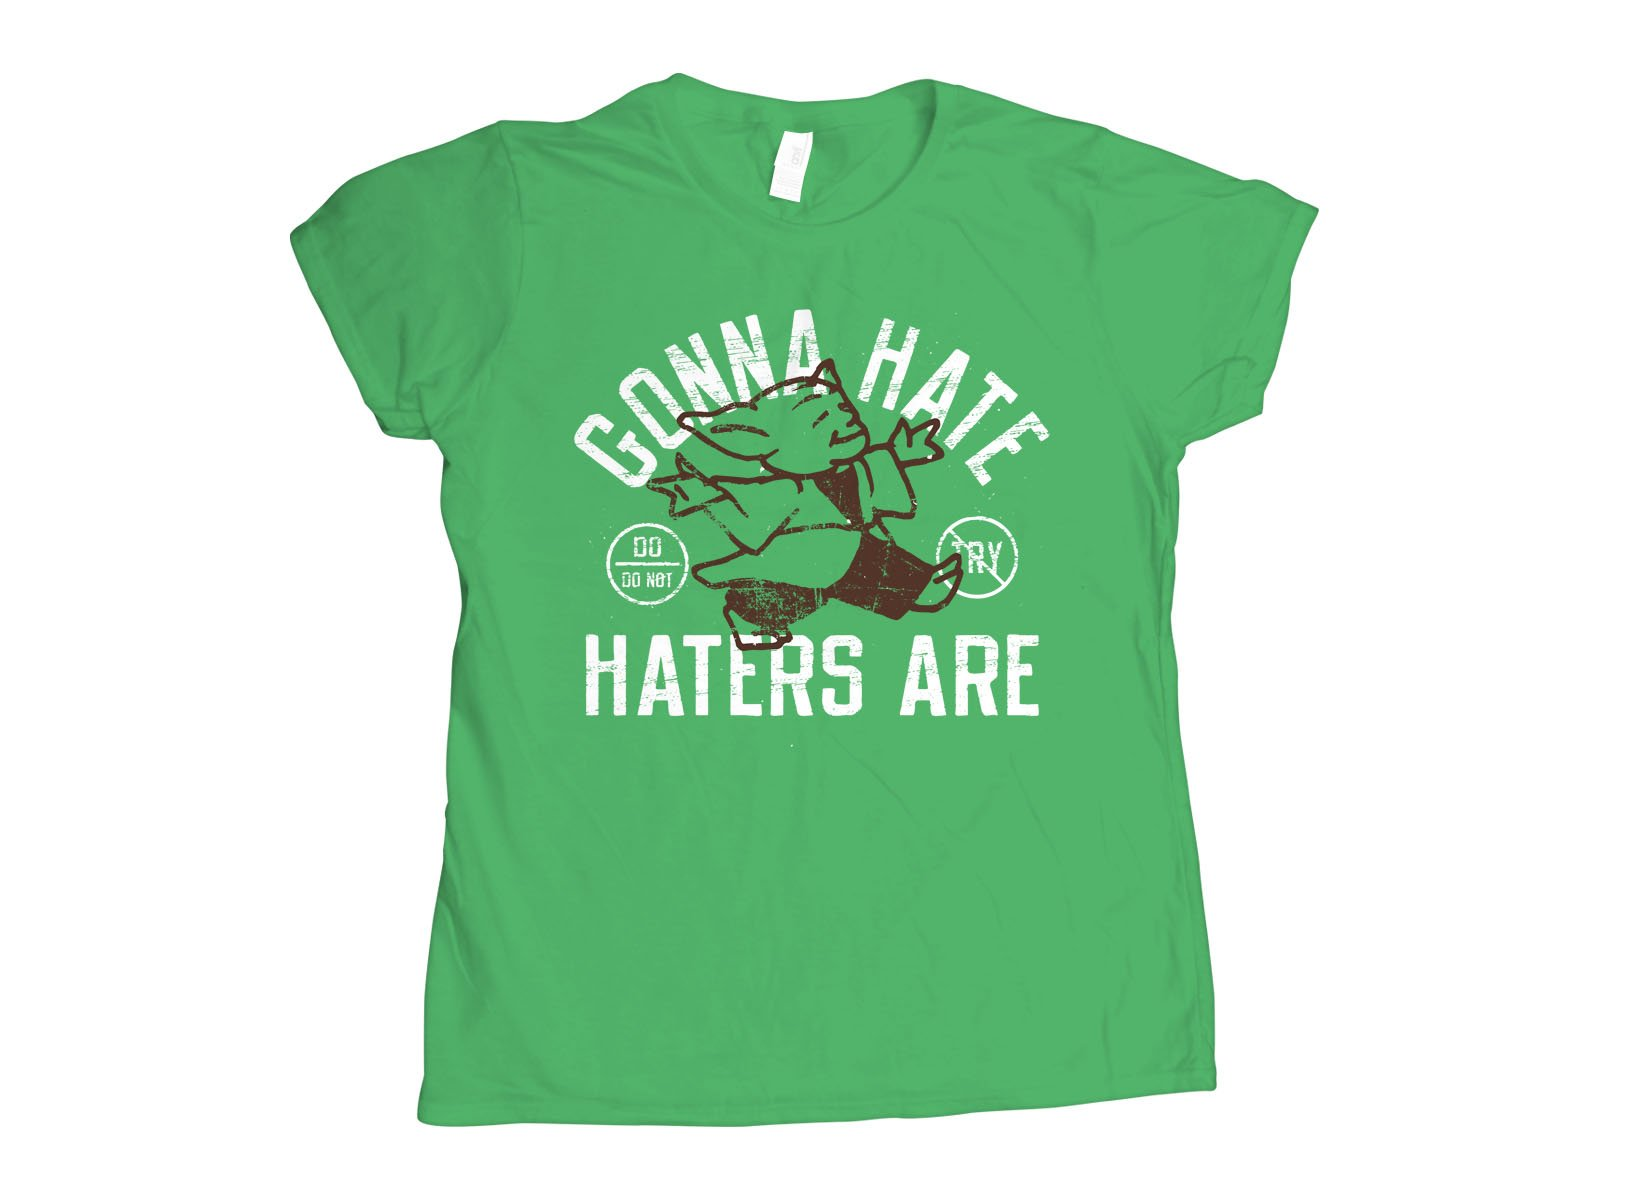 Gonna Hate Haters Are on Womens T-Shirt